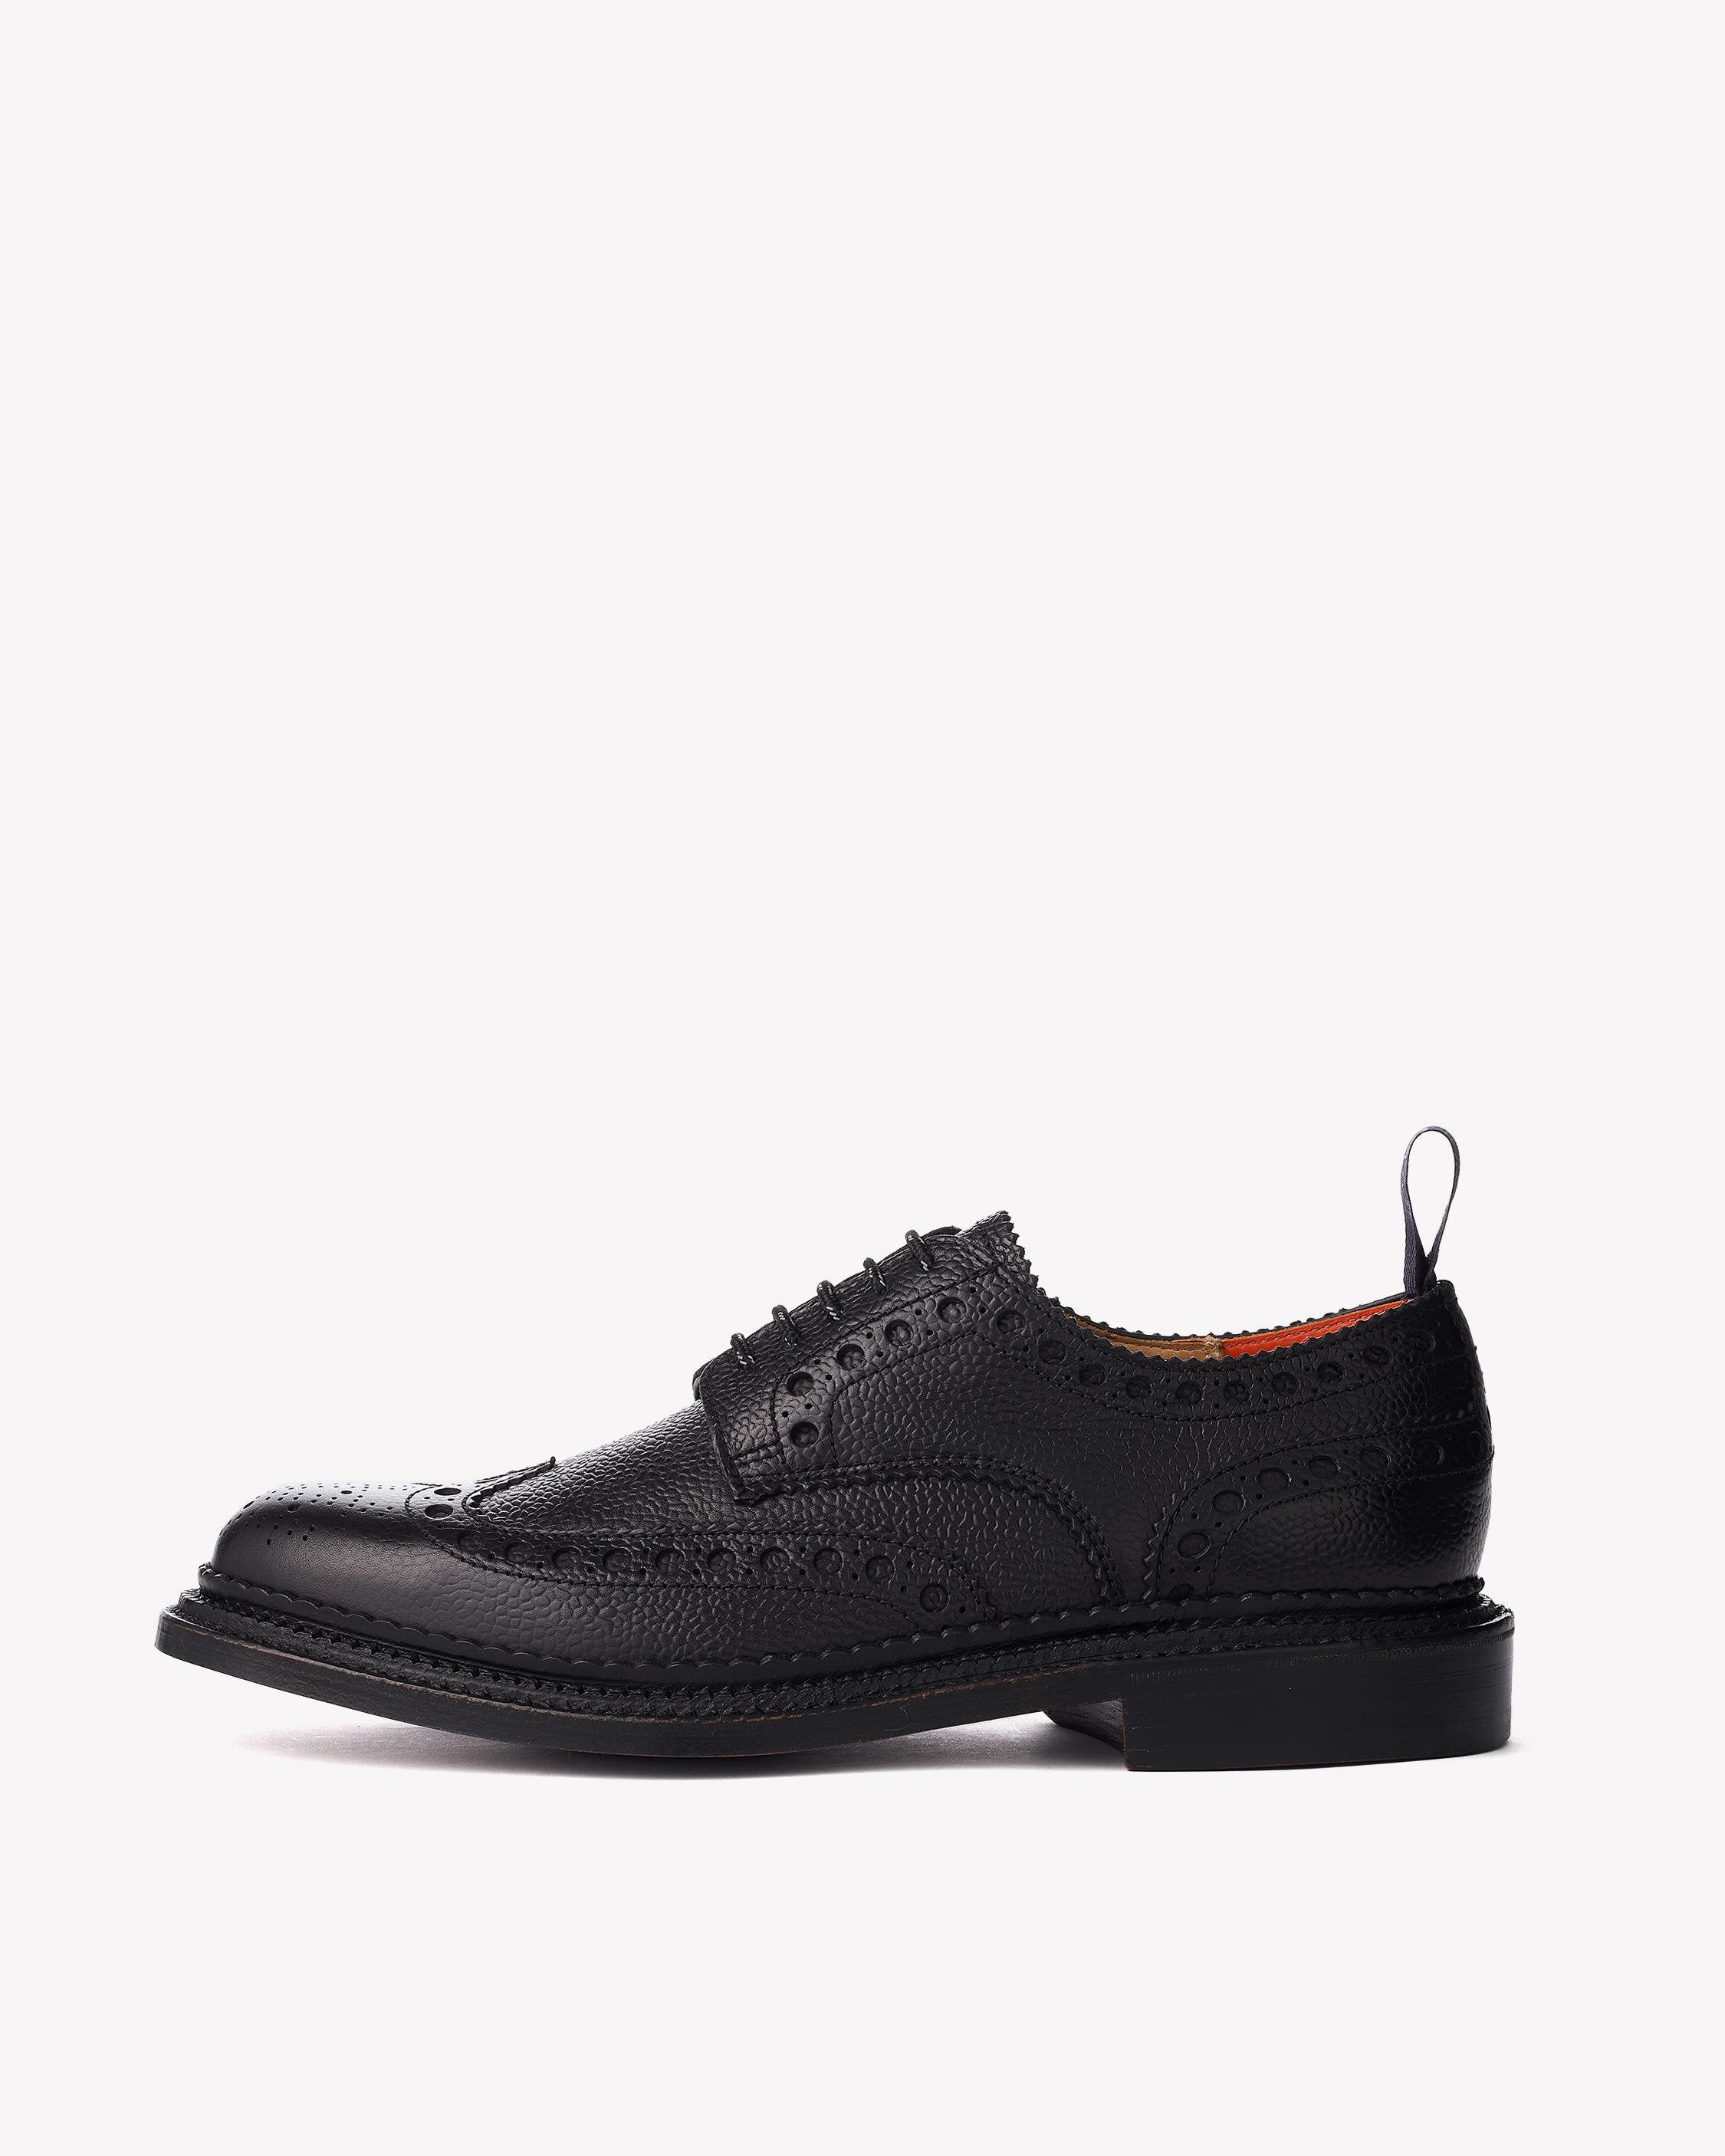 rag & bone X Grenson TRIPLE WELT BROGUE